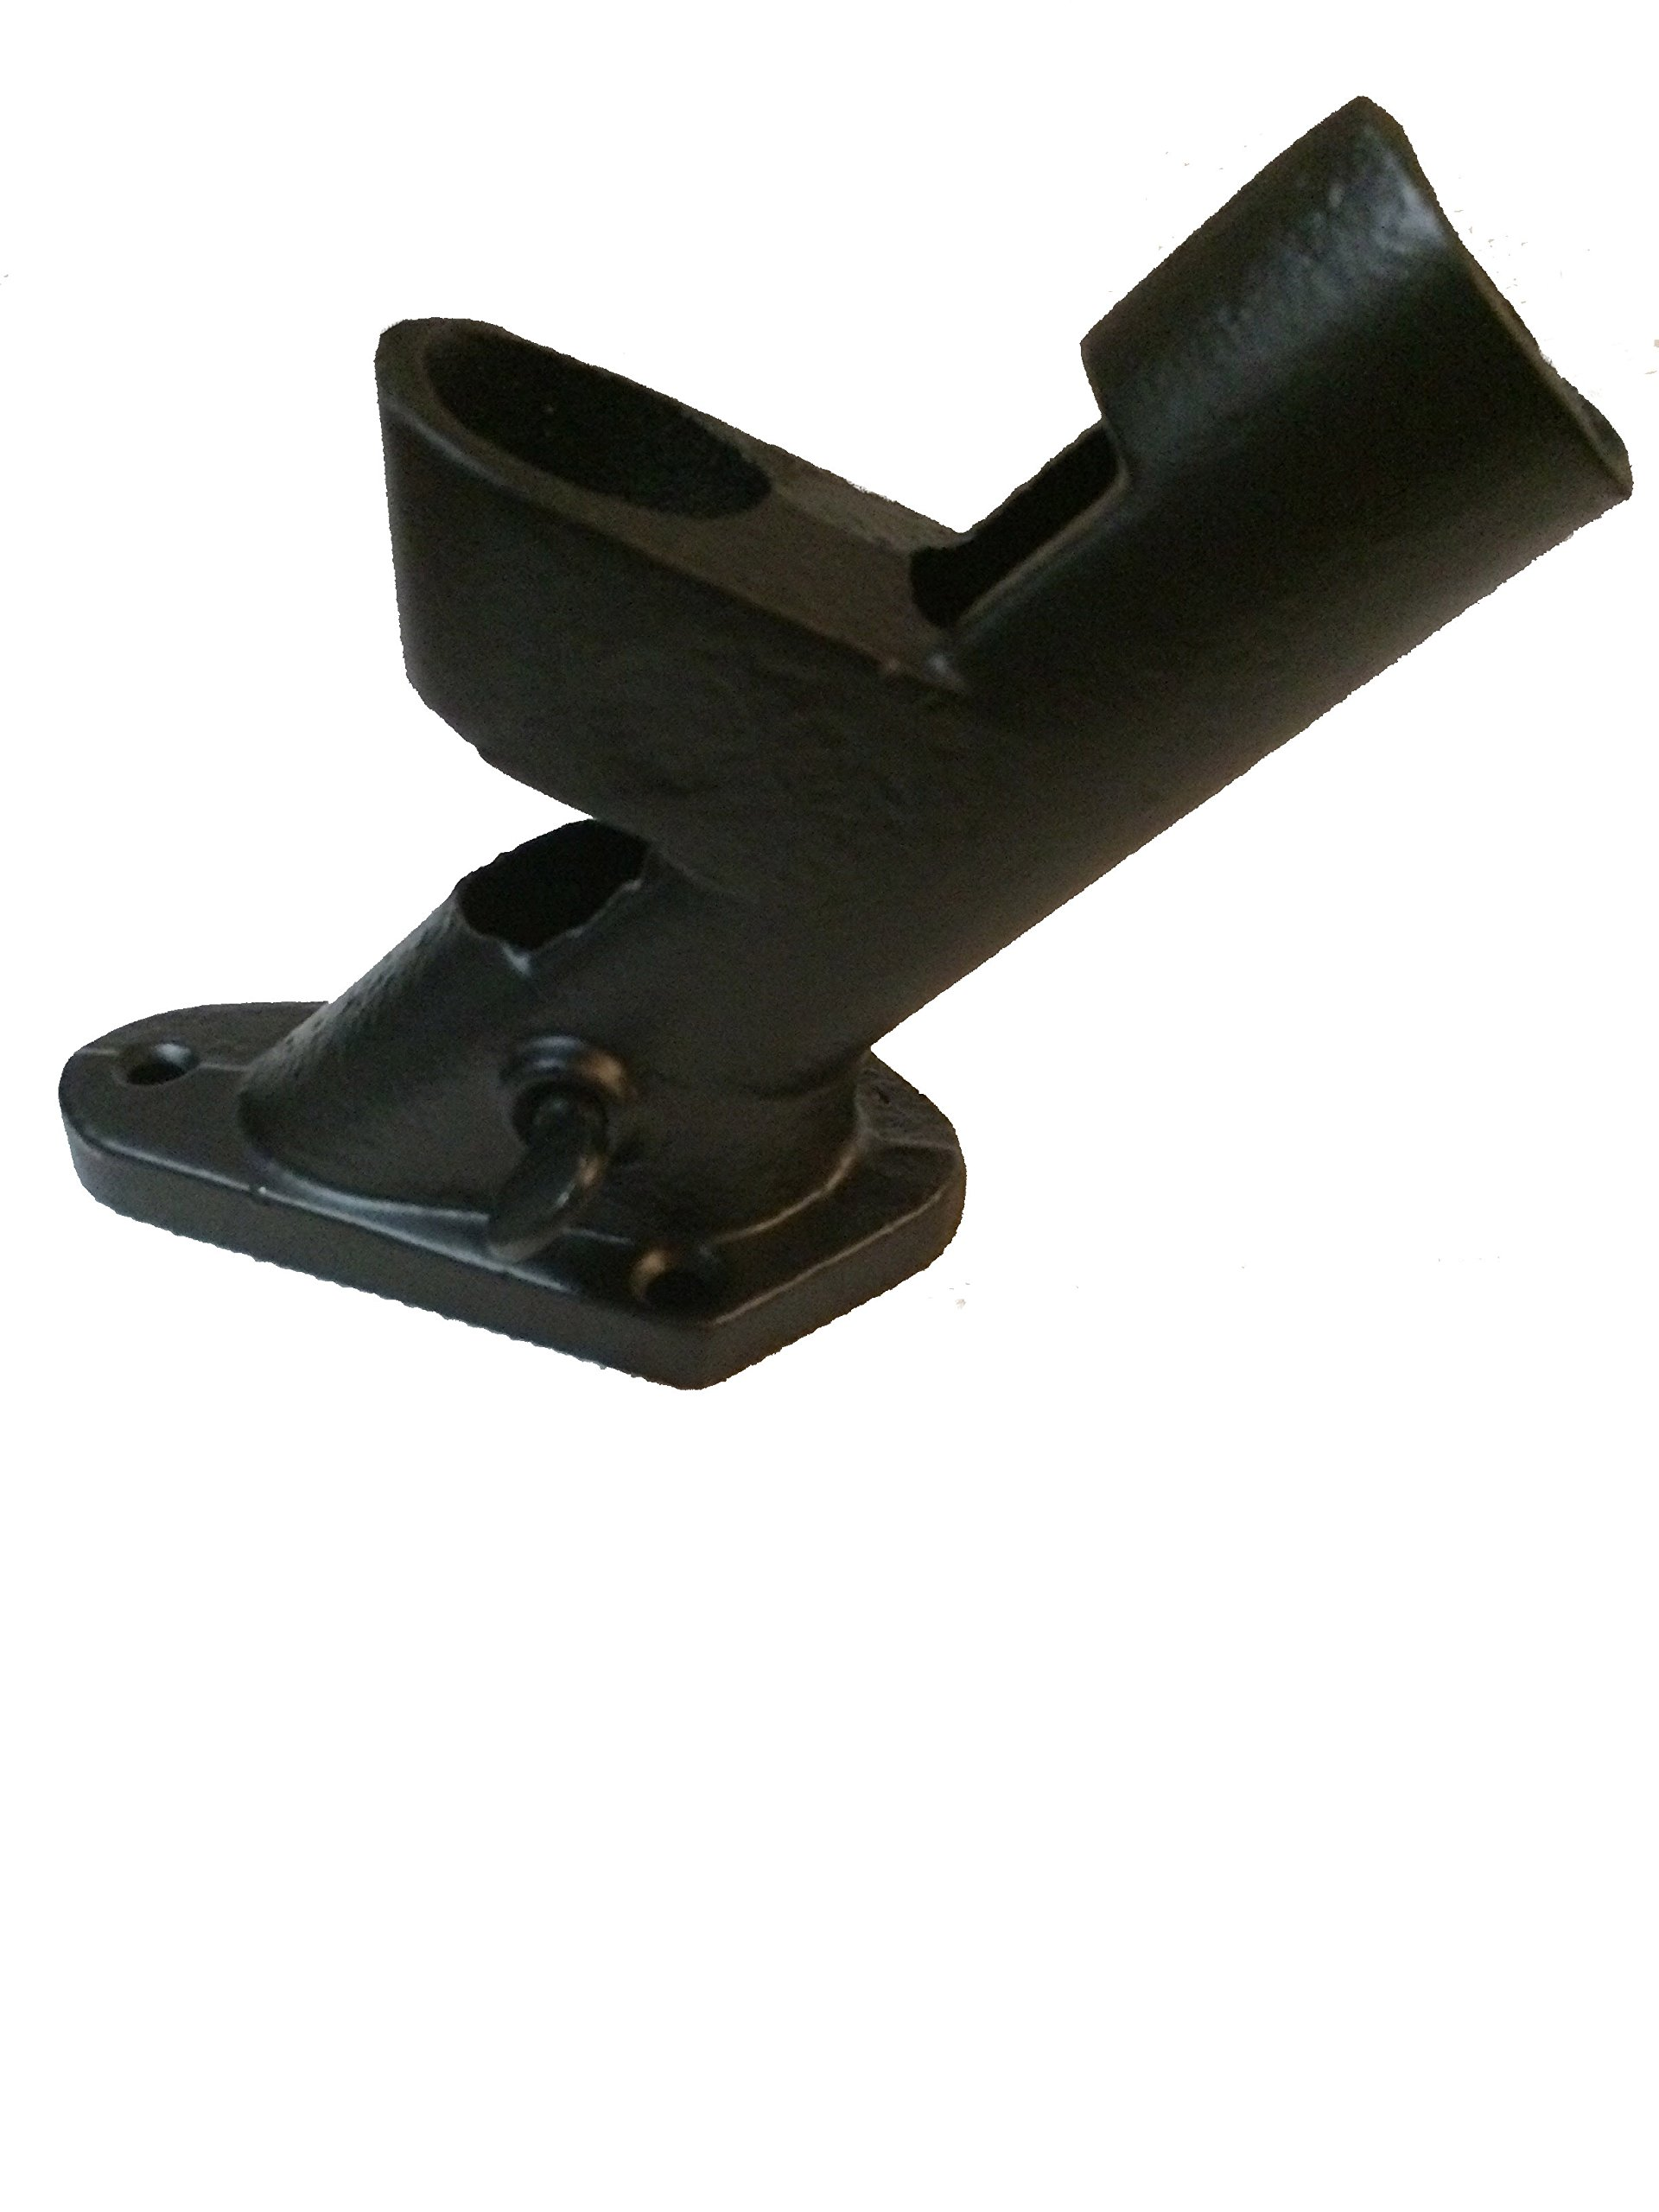 Evergreen Flag Cast Iron 2 Position Wall Mount House and Estate Flag Pole Bracket with Black Finish, 2.5 W x 6.5 H inches